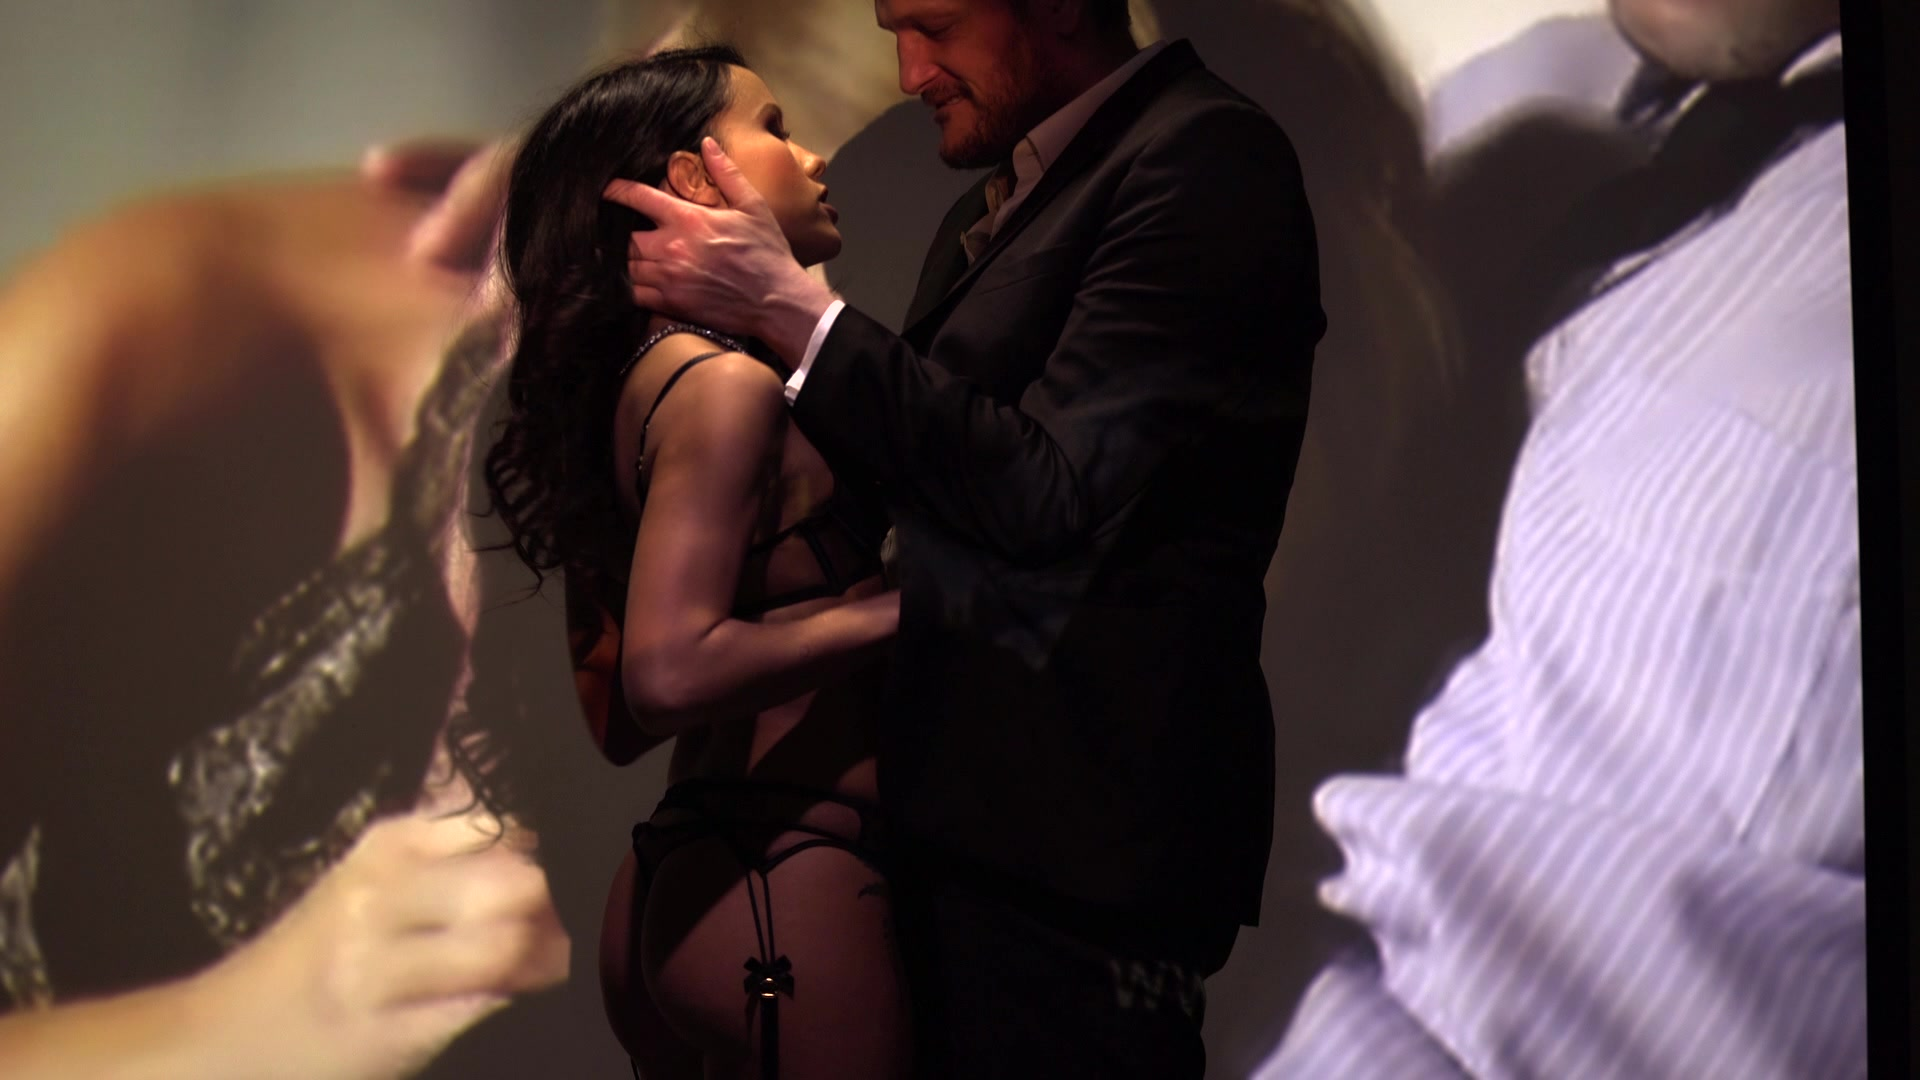 Scene with Megan Rain - image 5 out of 20